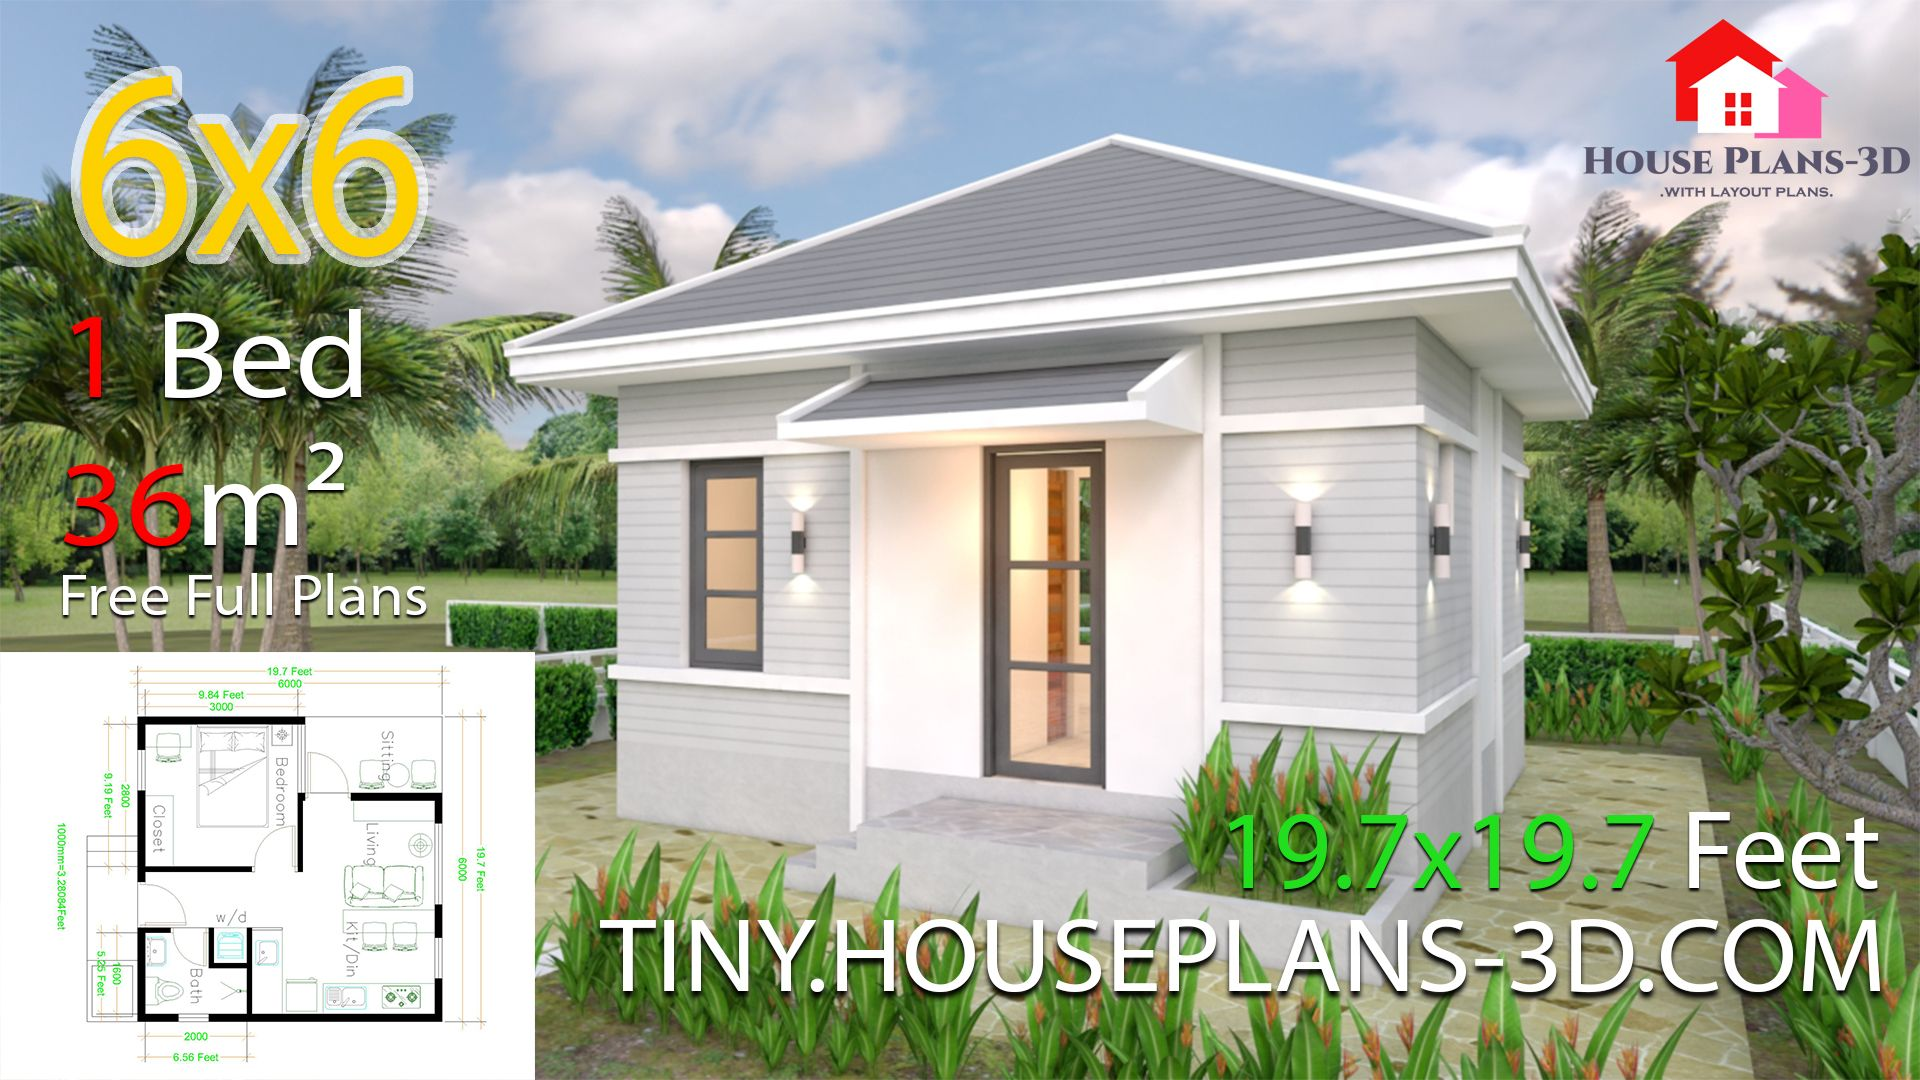 Small House Plans 6x6 With One Bedroom Hip Roof Tiny House Plans Simple House Plans House Plans Small House Design Plans